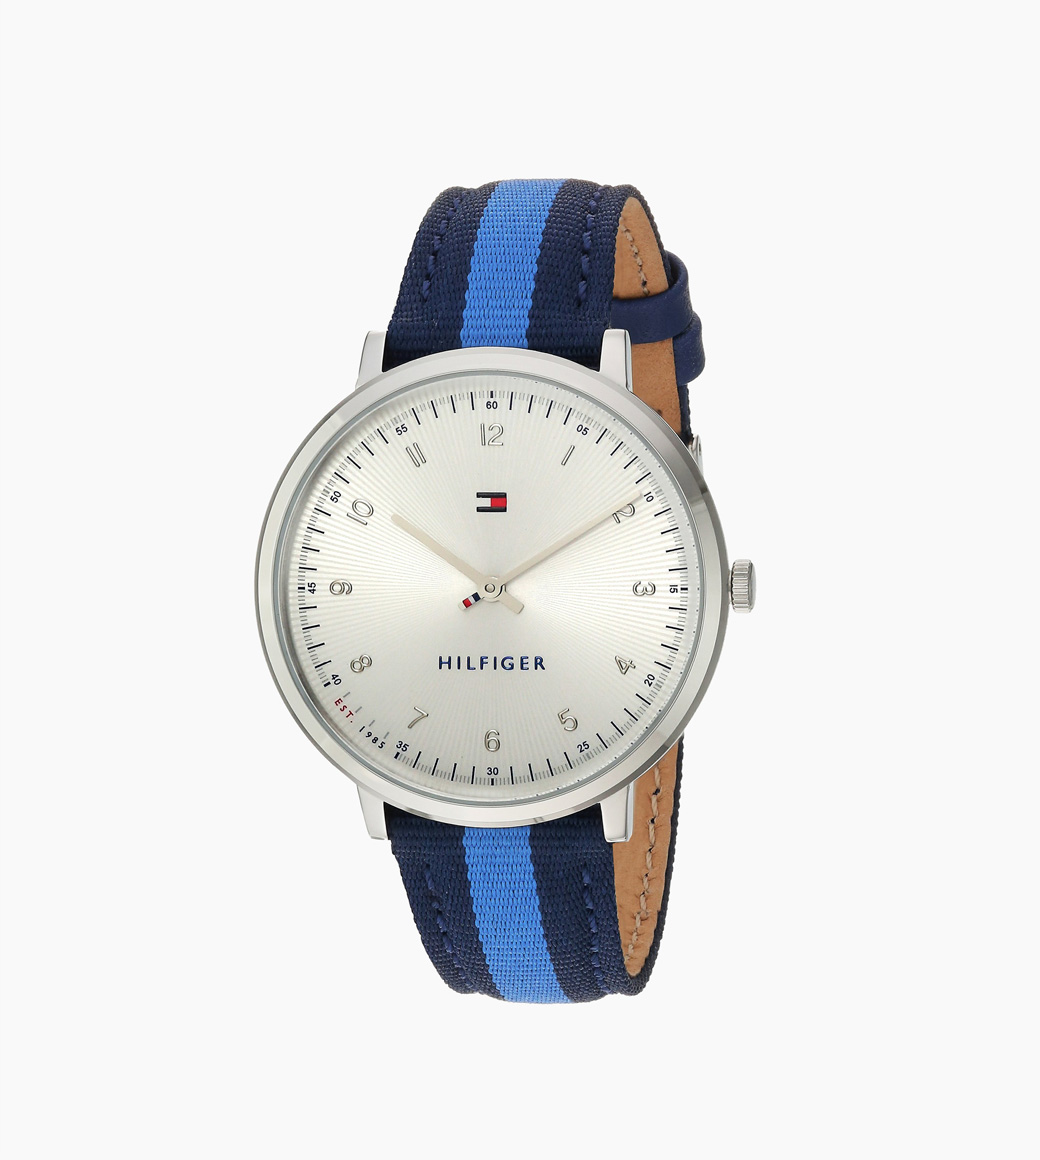 Women's Watches on lemkecollier.ga Welcome to the Amazon Canada Women's Watches Store. Within our selection are ladies' watches from classic, dress, luxury, fashion, and modern brands-- Michael Kors, Gucci, Citizen, Fossil, Invicta, just to name a few.